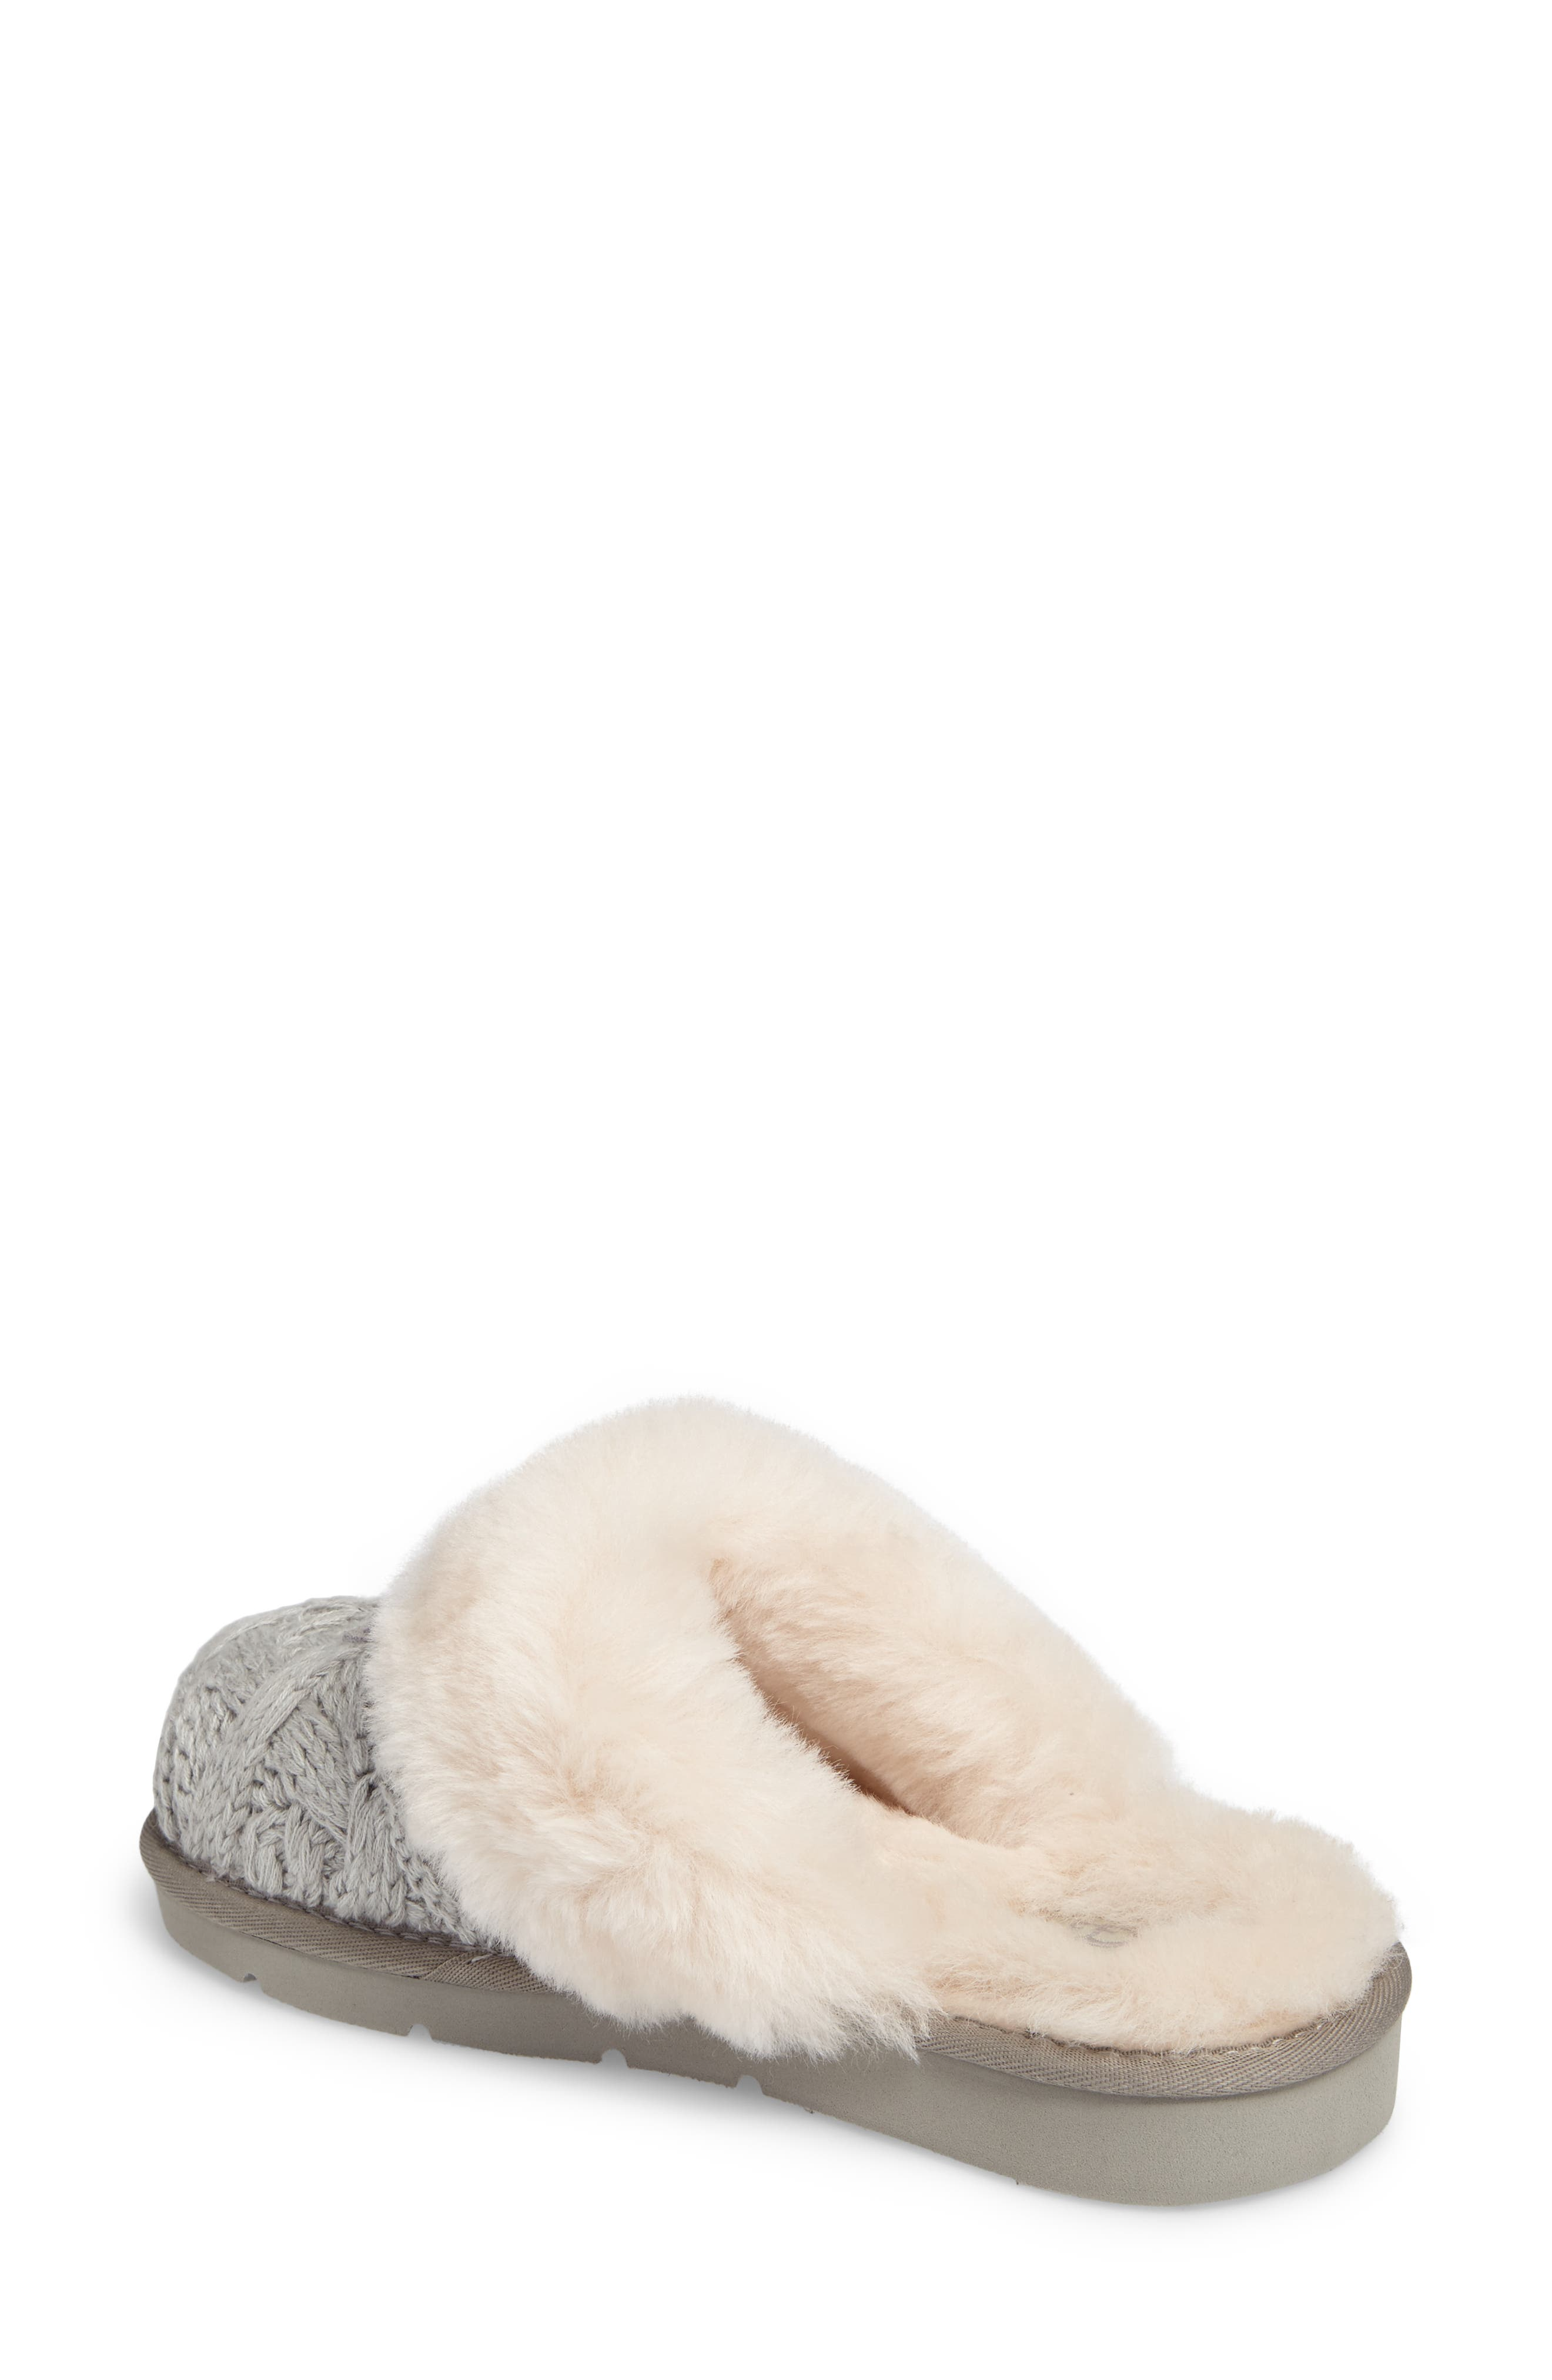 Cozy Cable Slipper,                             Alternate thumbnail 3, color,                             Seal Fabric